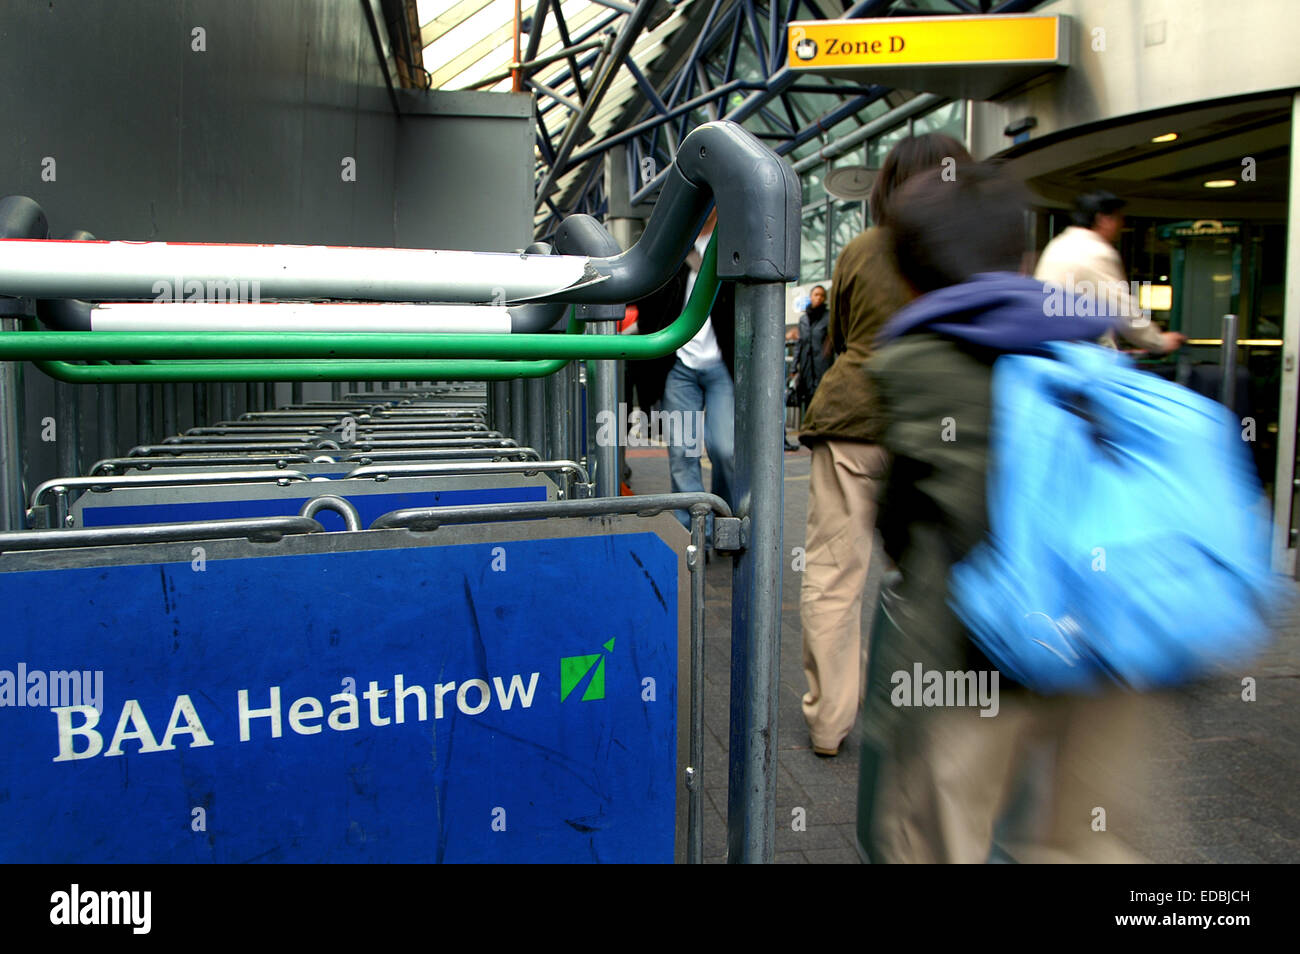 Picture shows: A passenger going towards the check-in area at Heathrow Airport. - Stock Image